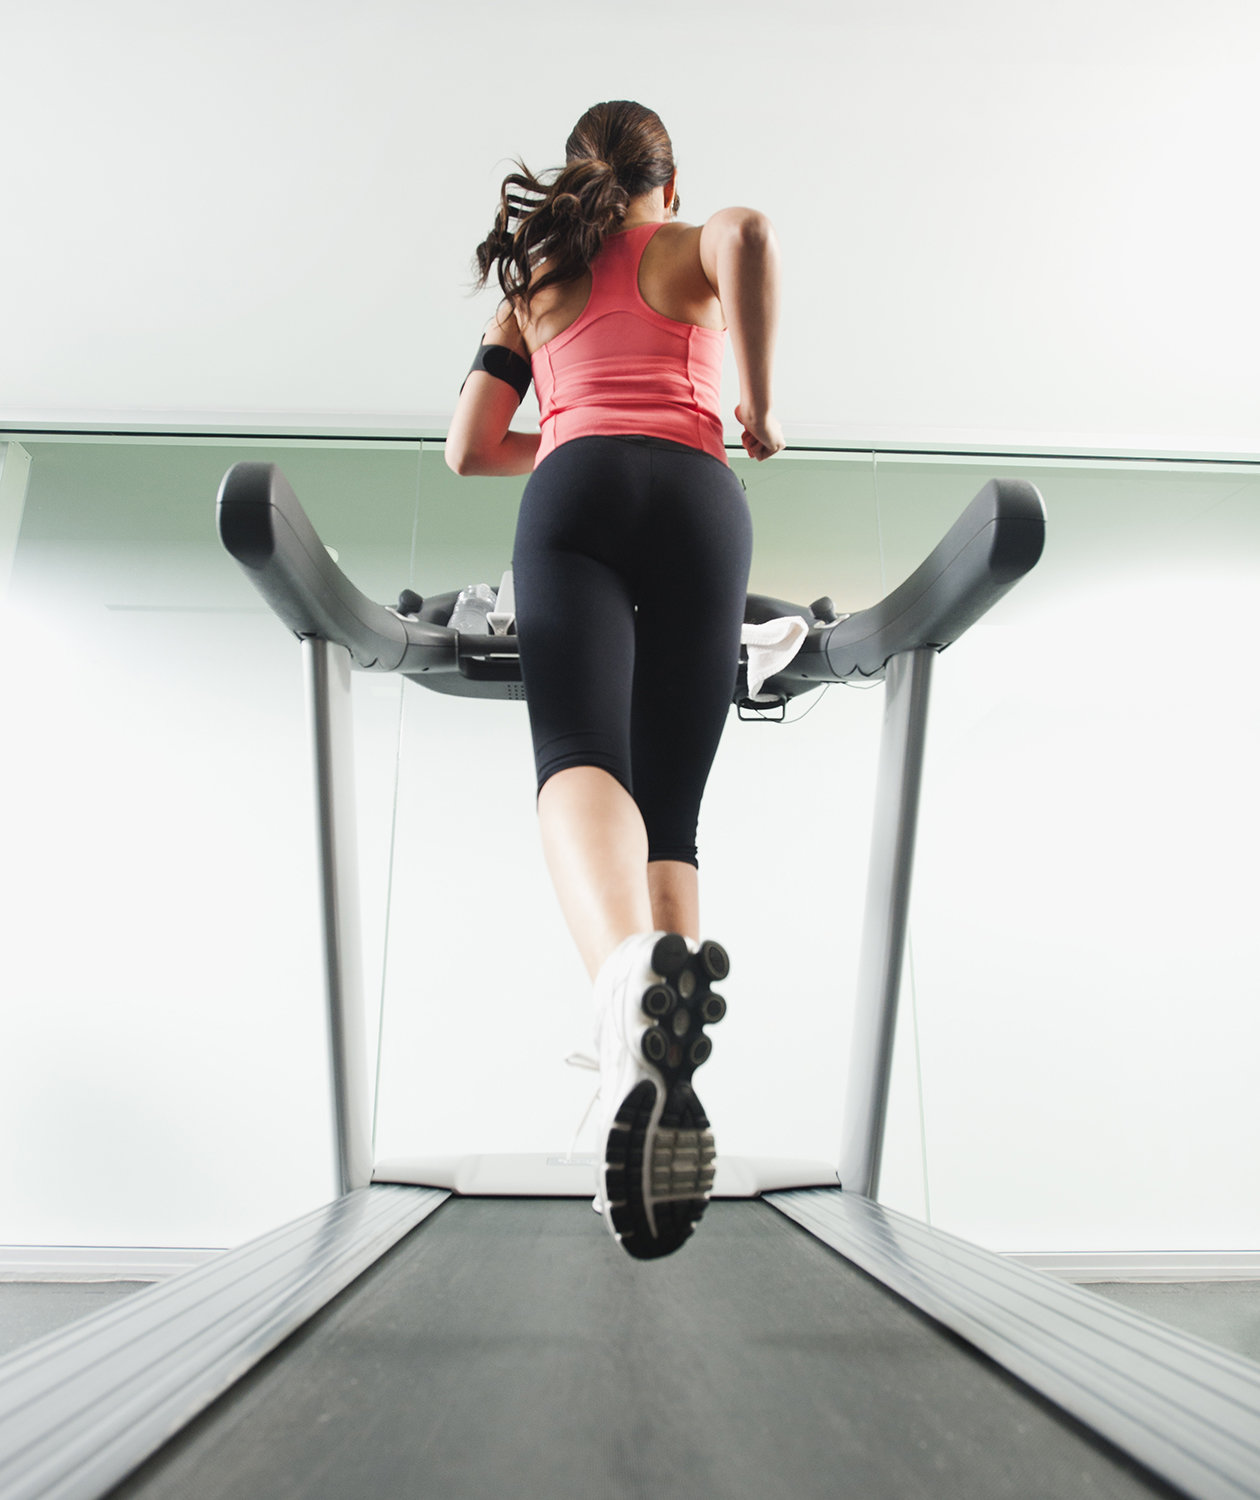 treadmill-workouts